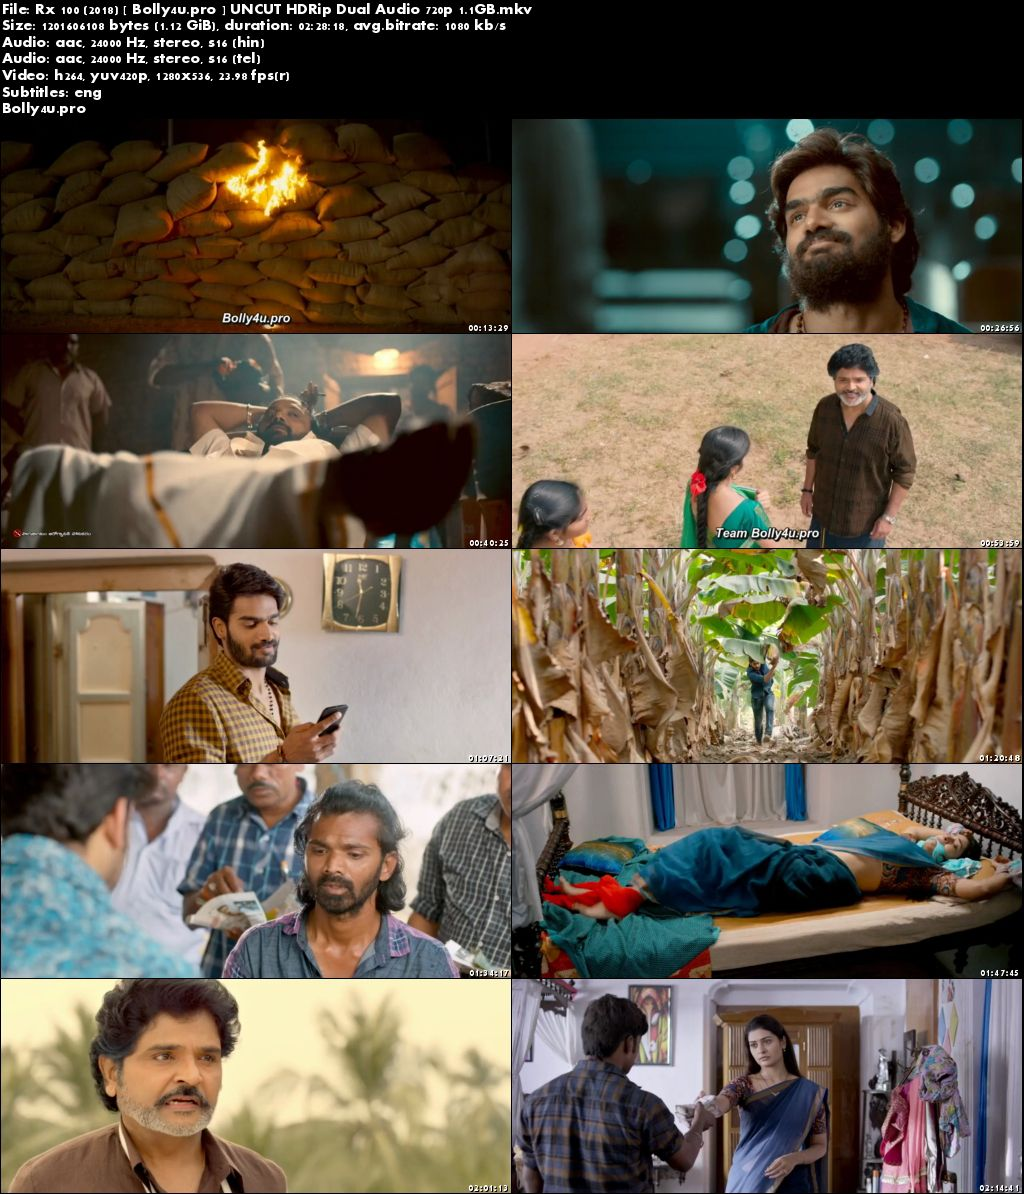 RX 100 2018 HDRip 450MB UNCUT Hindi Dual Audio 480p ESub Download